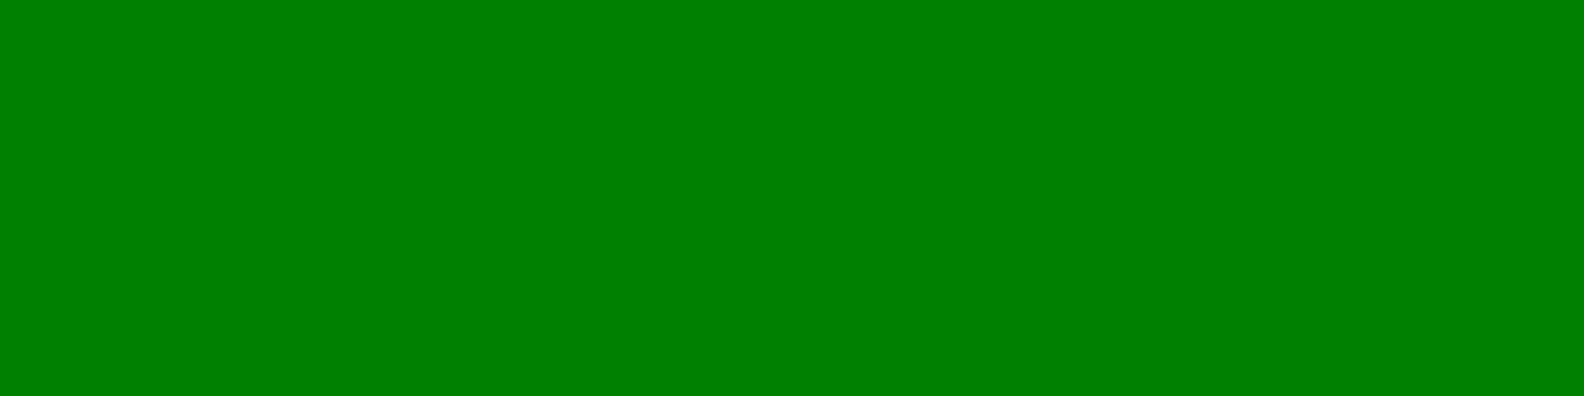 1584x396 Green Web Color Solid Color Background